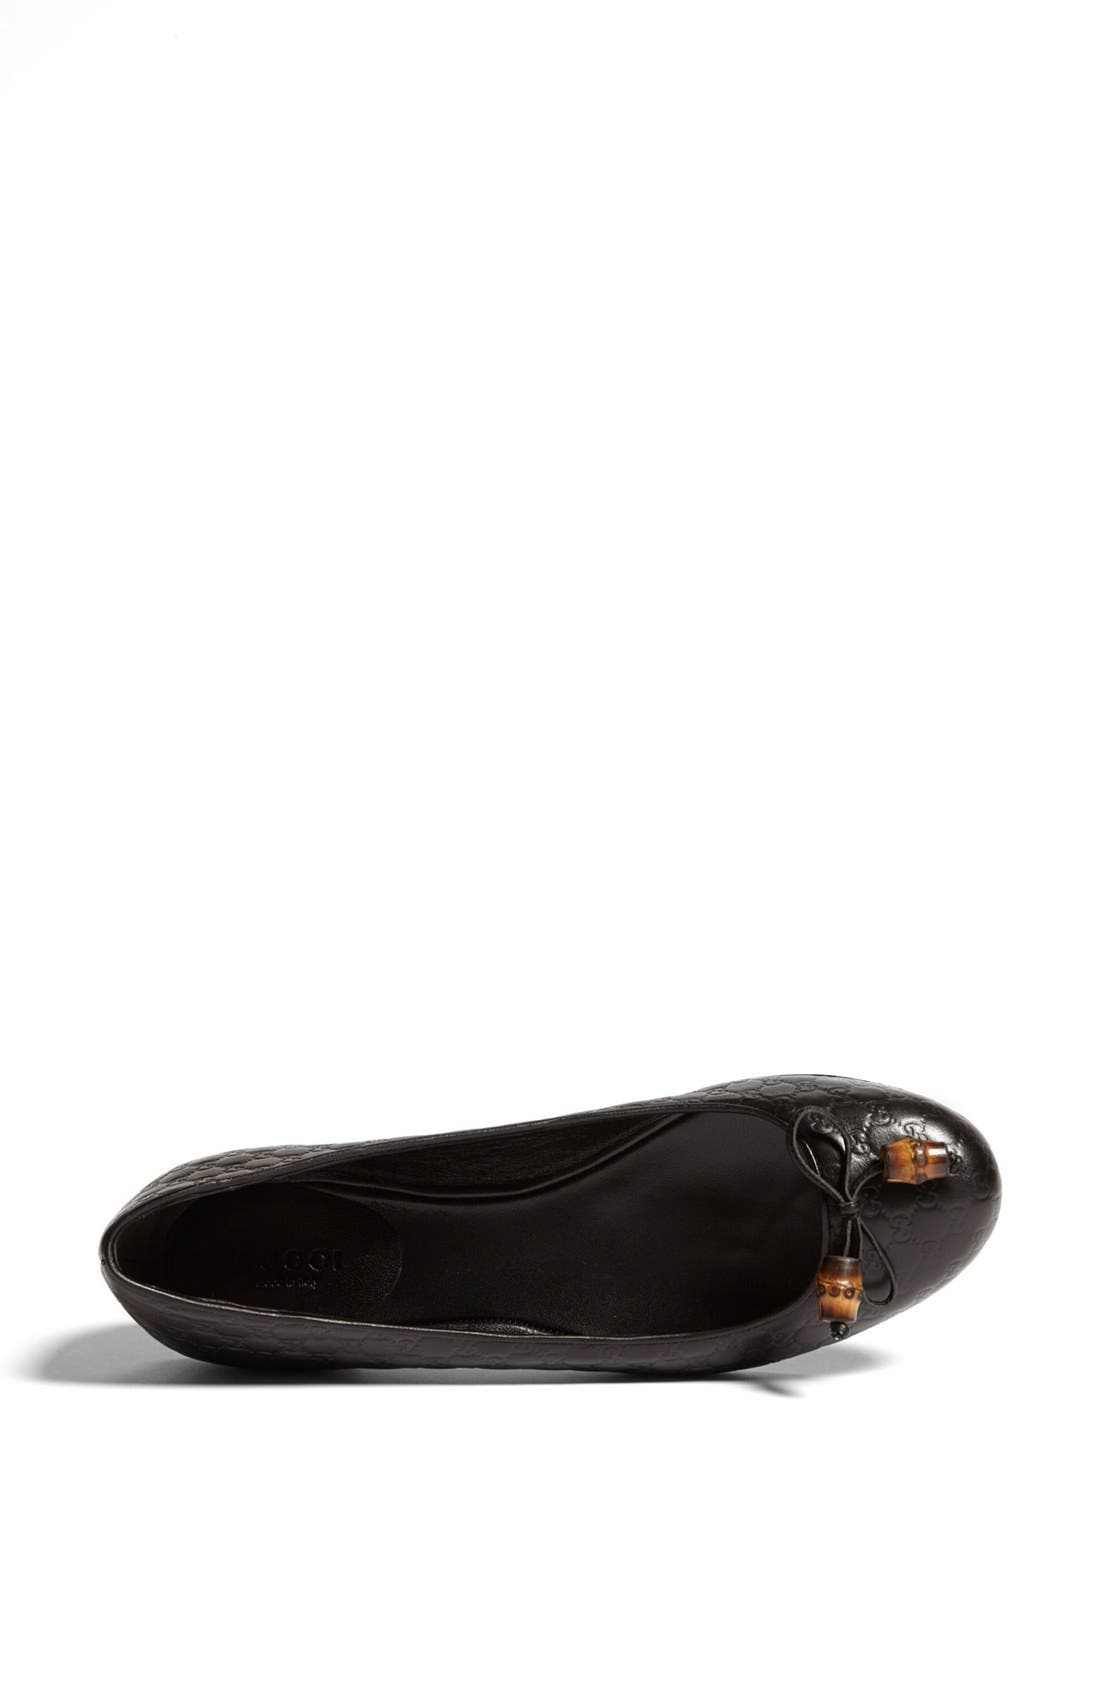 Alternate Image 3  - Gucci 'Sylvie' Bamboo Bow Ballet Flat